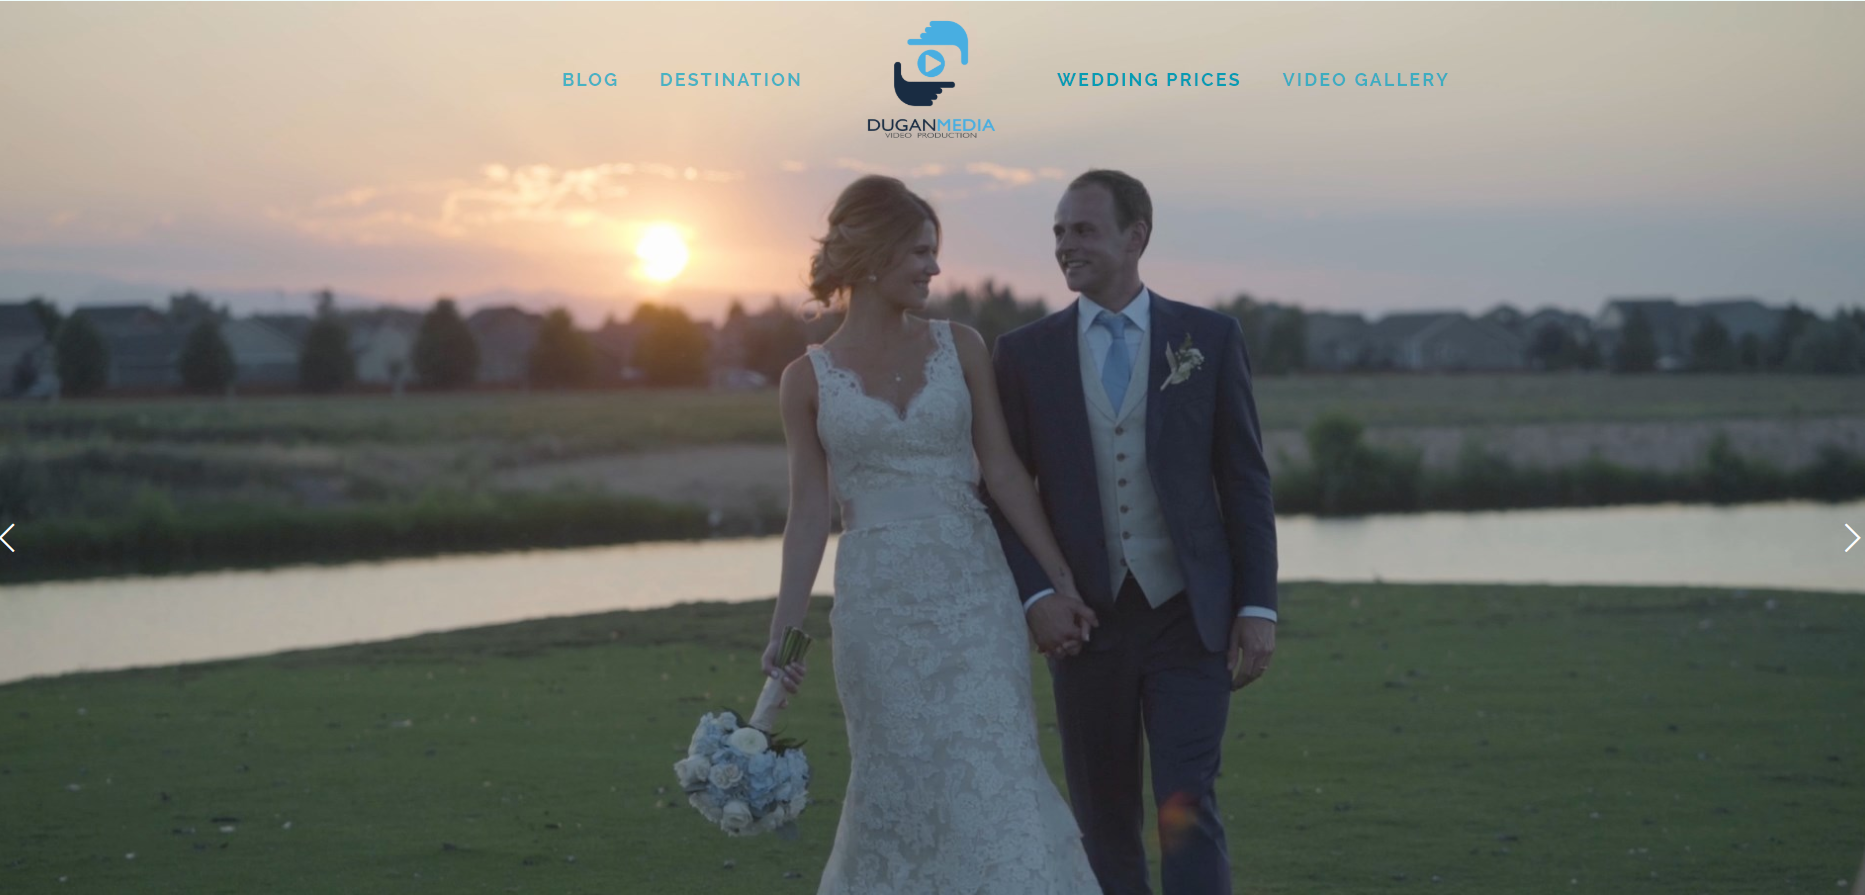 Check out your potential viedographer's website to learn more about their style.